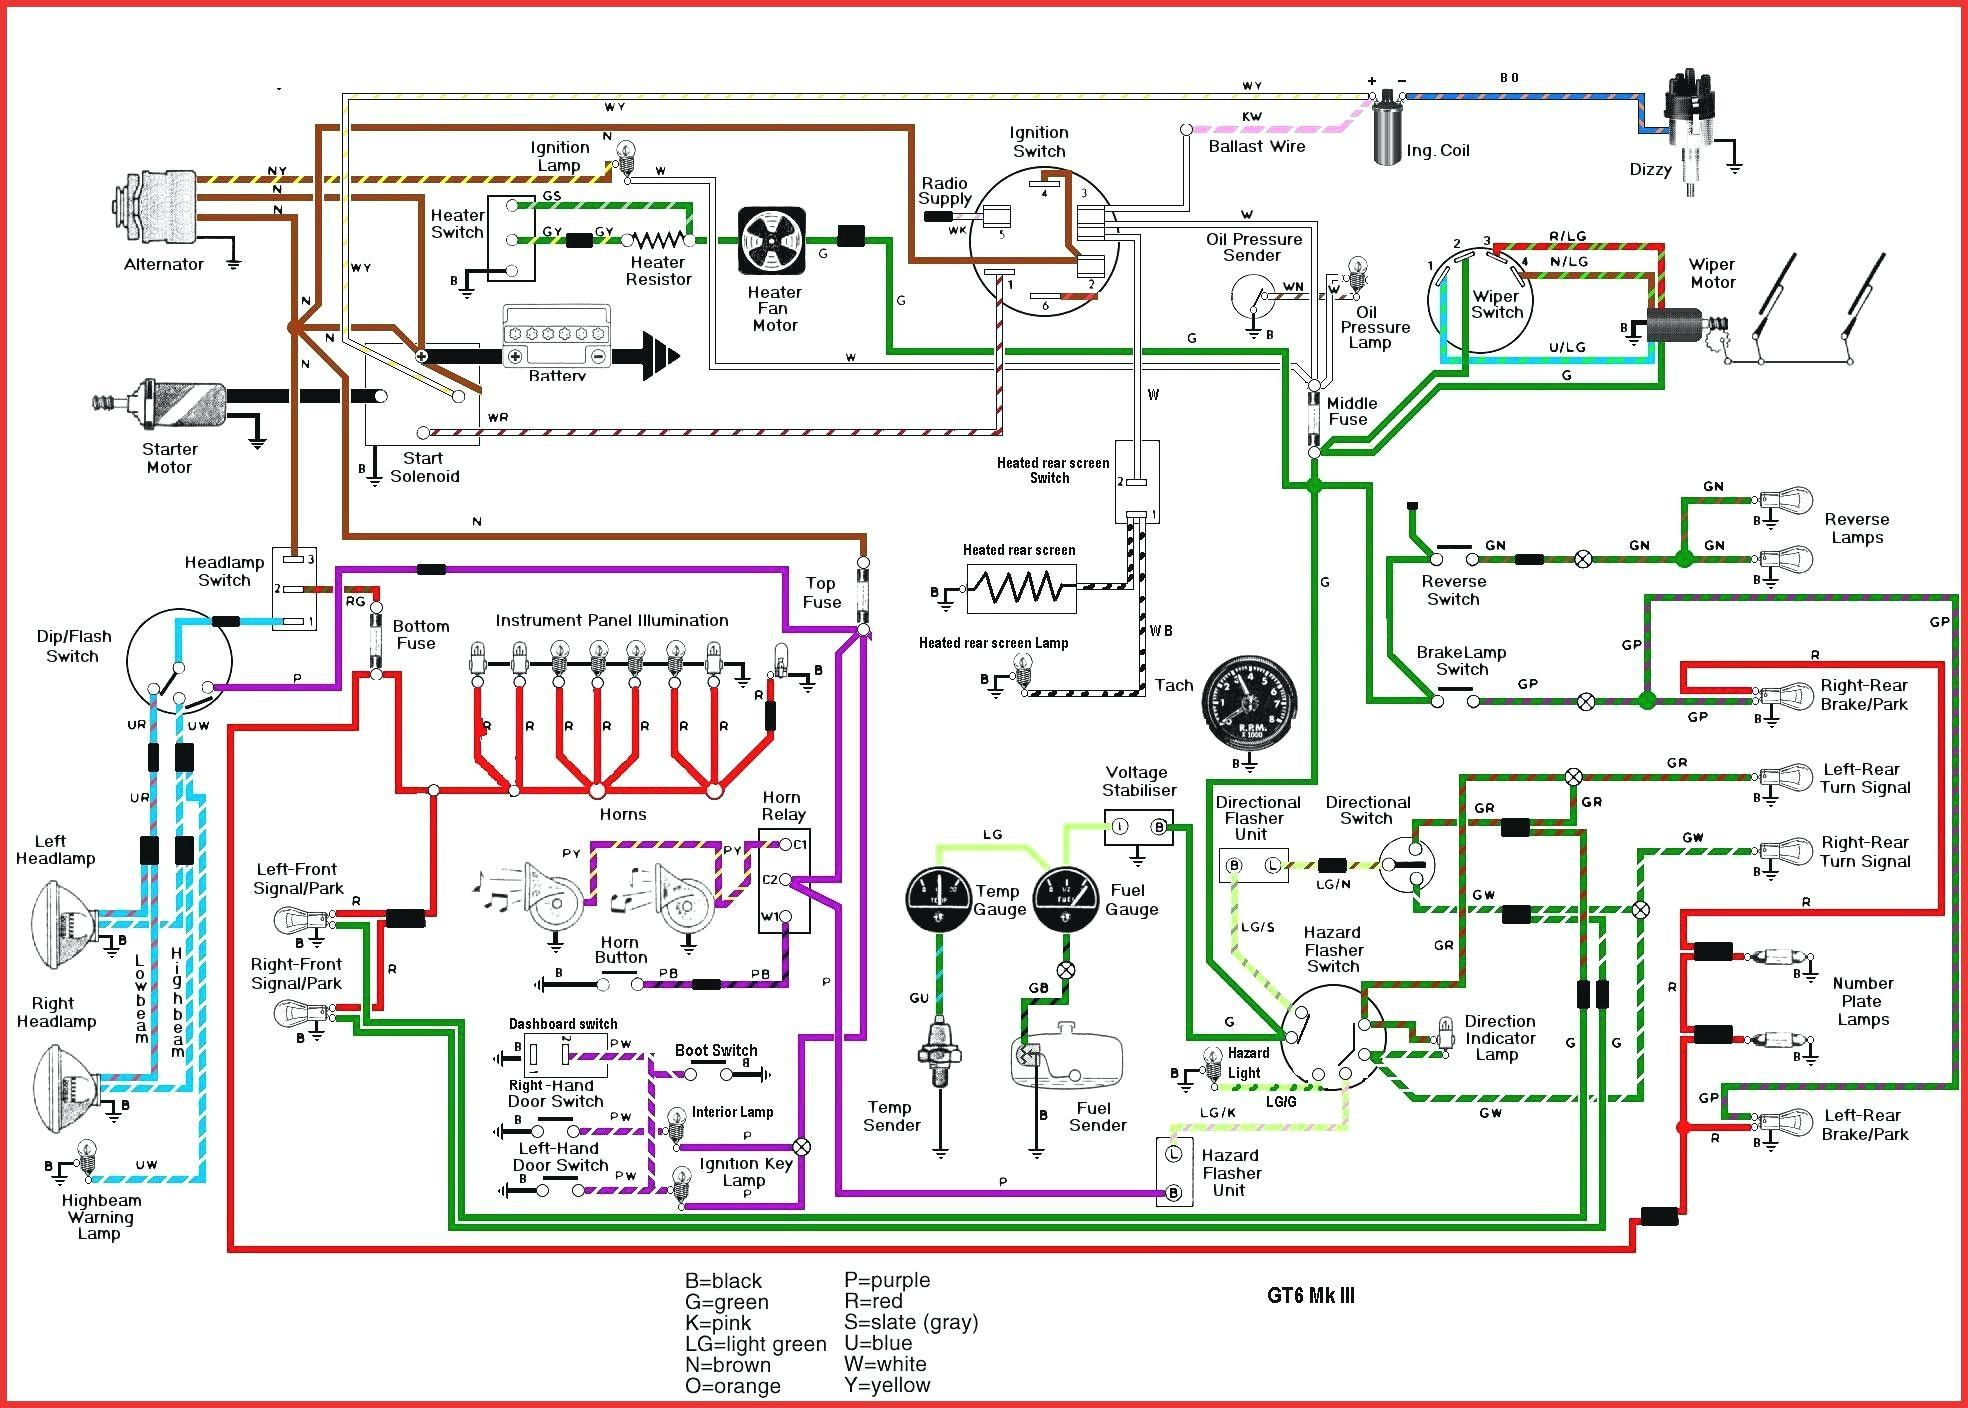 residential electrical schematic diagrams daily update home plumbing diagrams home wiring diagrams and blueprints #5